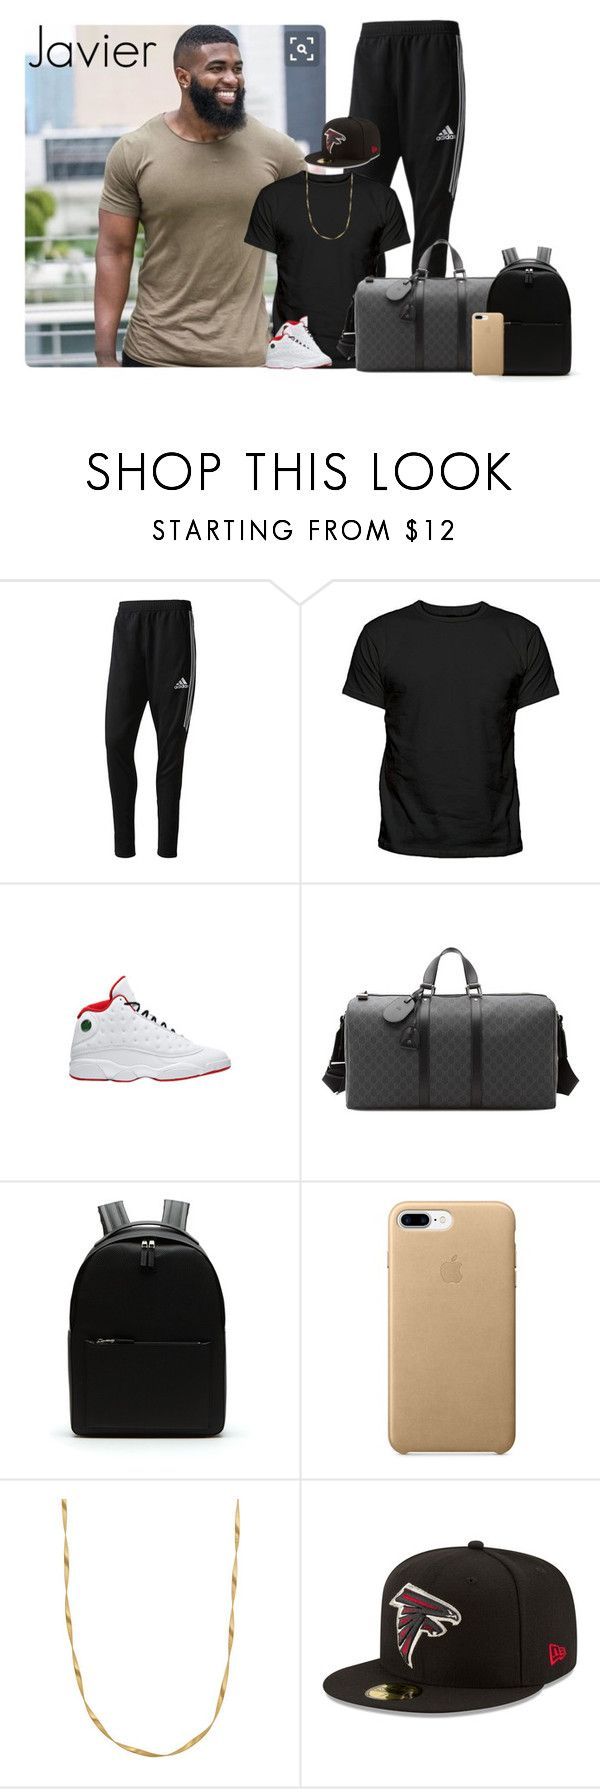 """Flight To Pittsburgh, Pennsylvania For Game On Sunday Against The Steelers (Javier)"" by joisfuturekids ❤ liked on Polyvore featuring adidas, Gucci, Lacoste, Marco Bicego, New Era, men's fashion, menswear and therichfam"